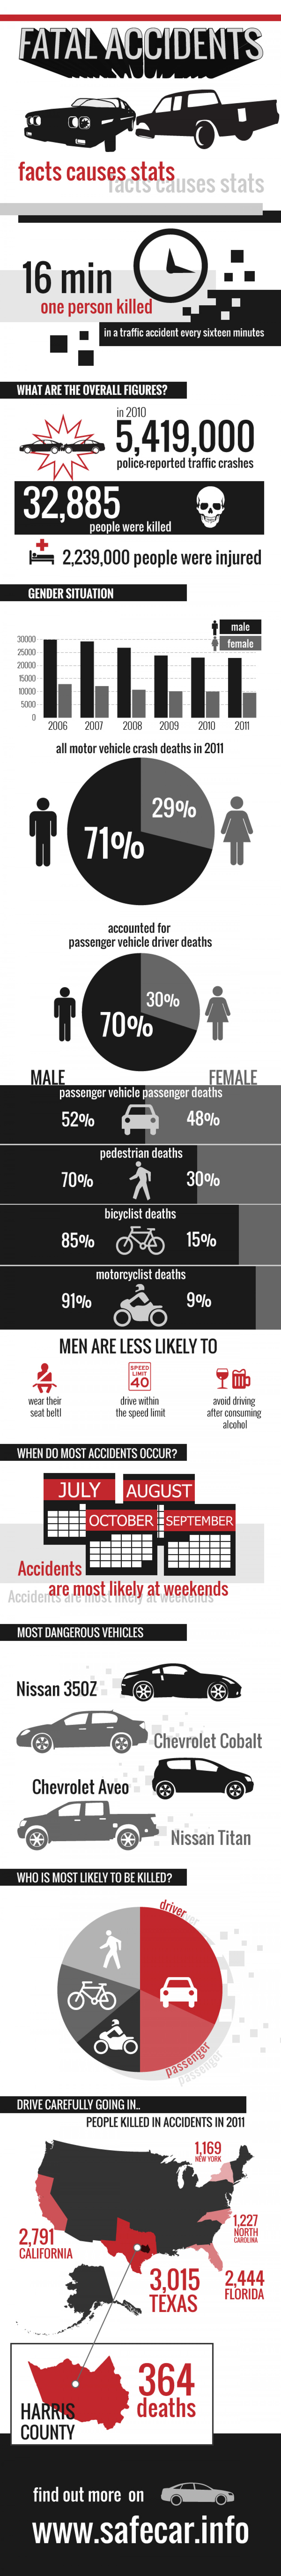 Fatal accidents Infographic